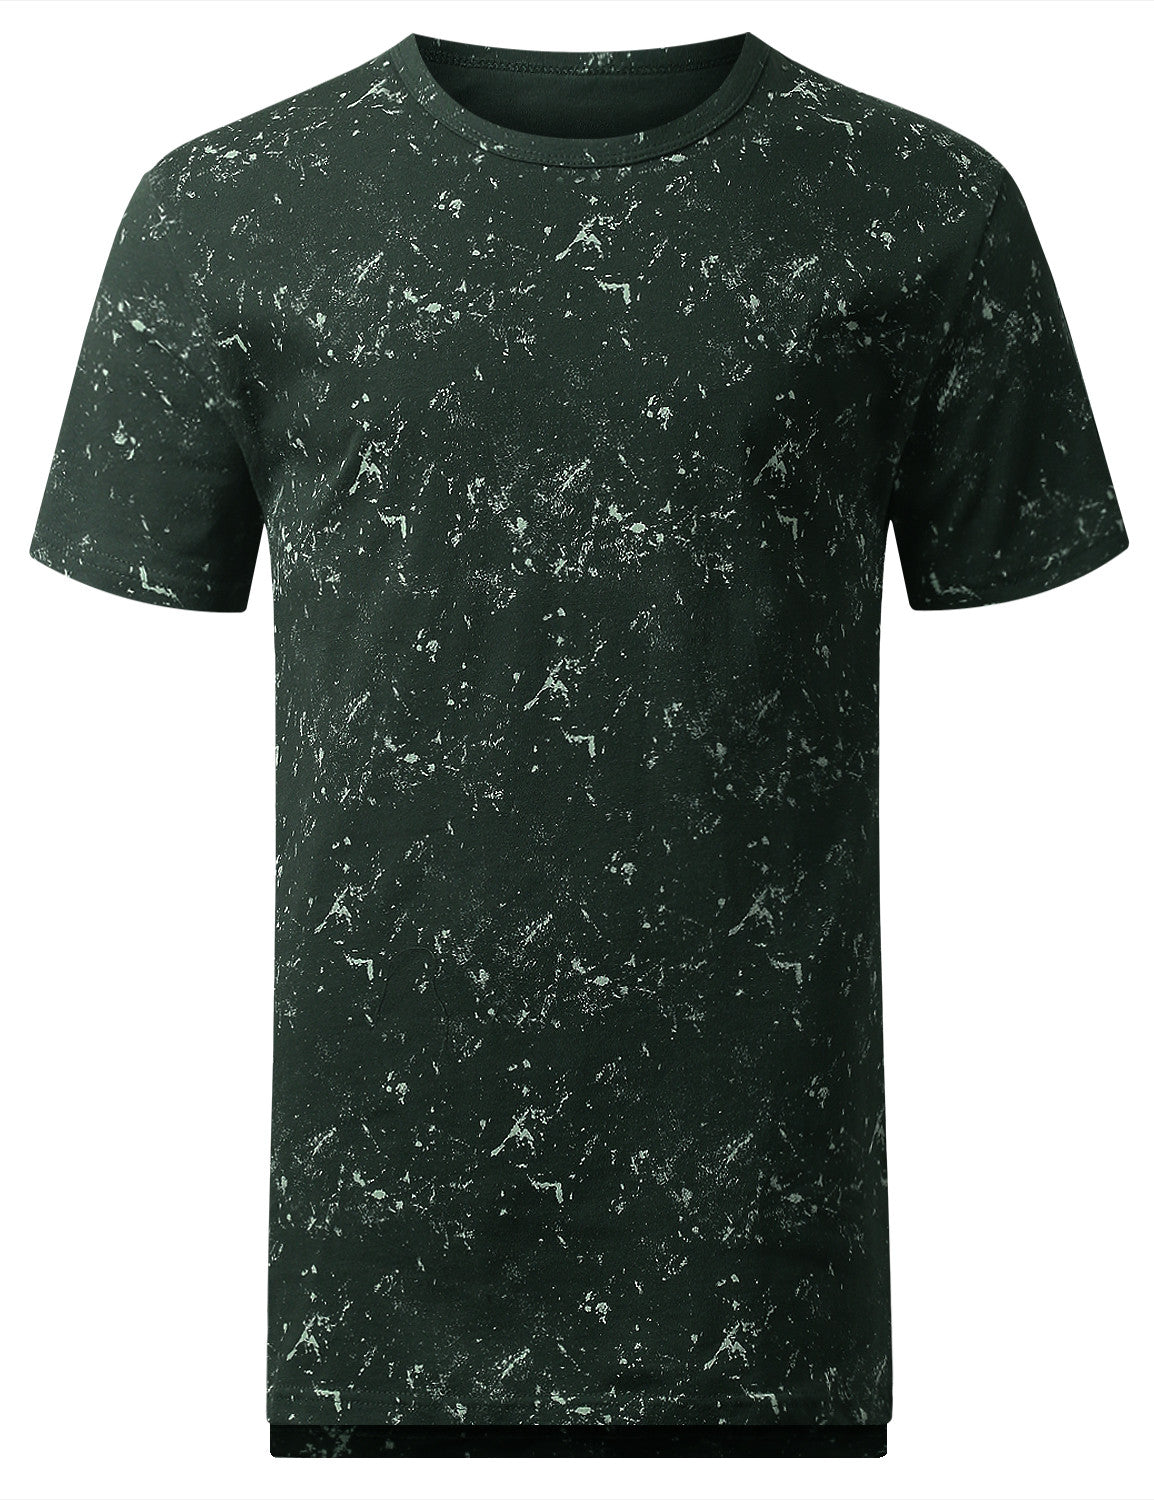 SAGE Tied Wash Longline T-shirt - URBANCREWS